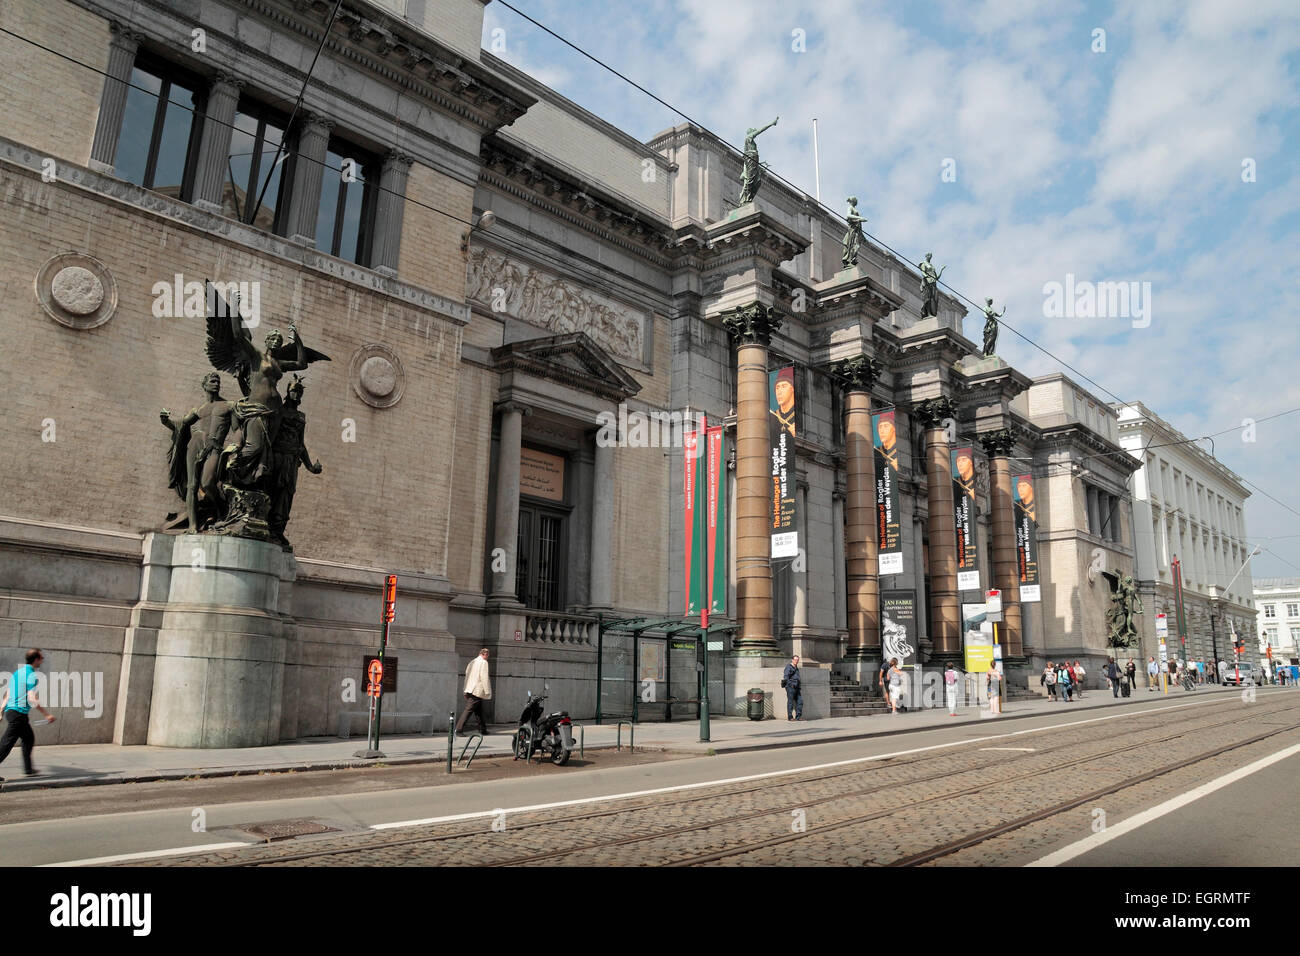 The Royal Museums of Fine Arts of Belgium in Brussels, Belgium. - Stock Image